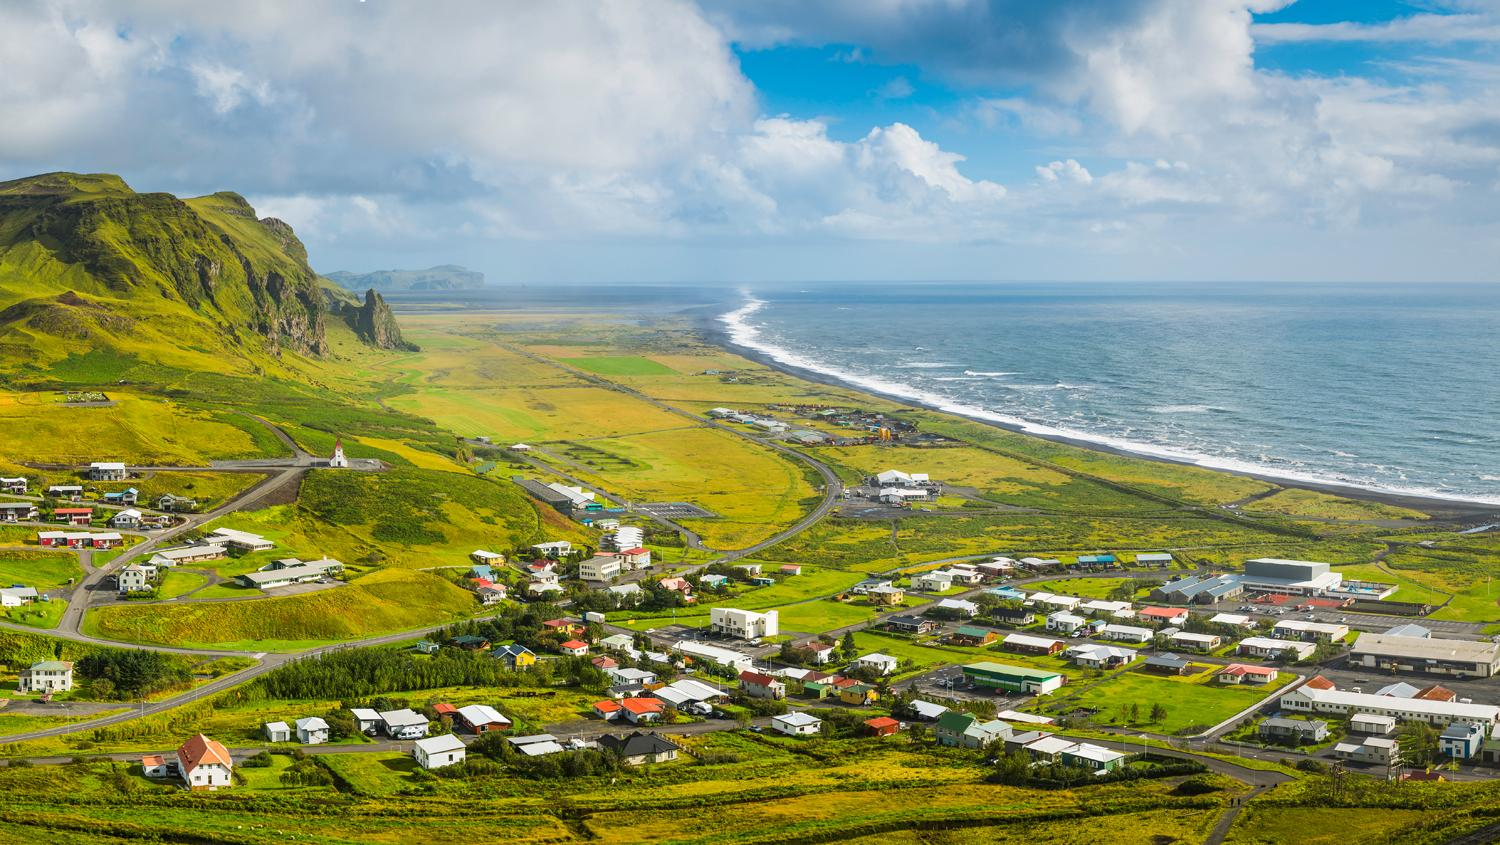 Iceland remains a real tourism hotspot.